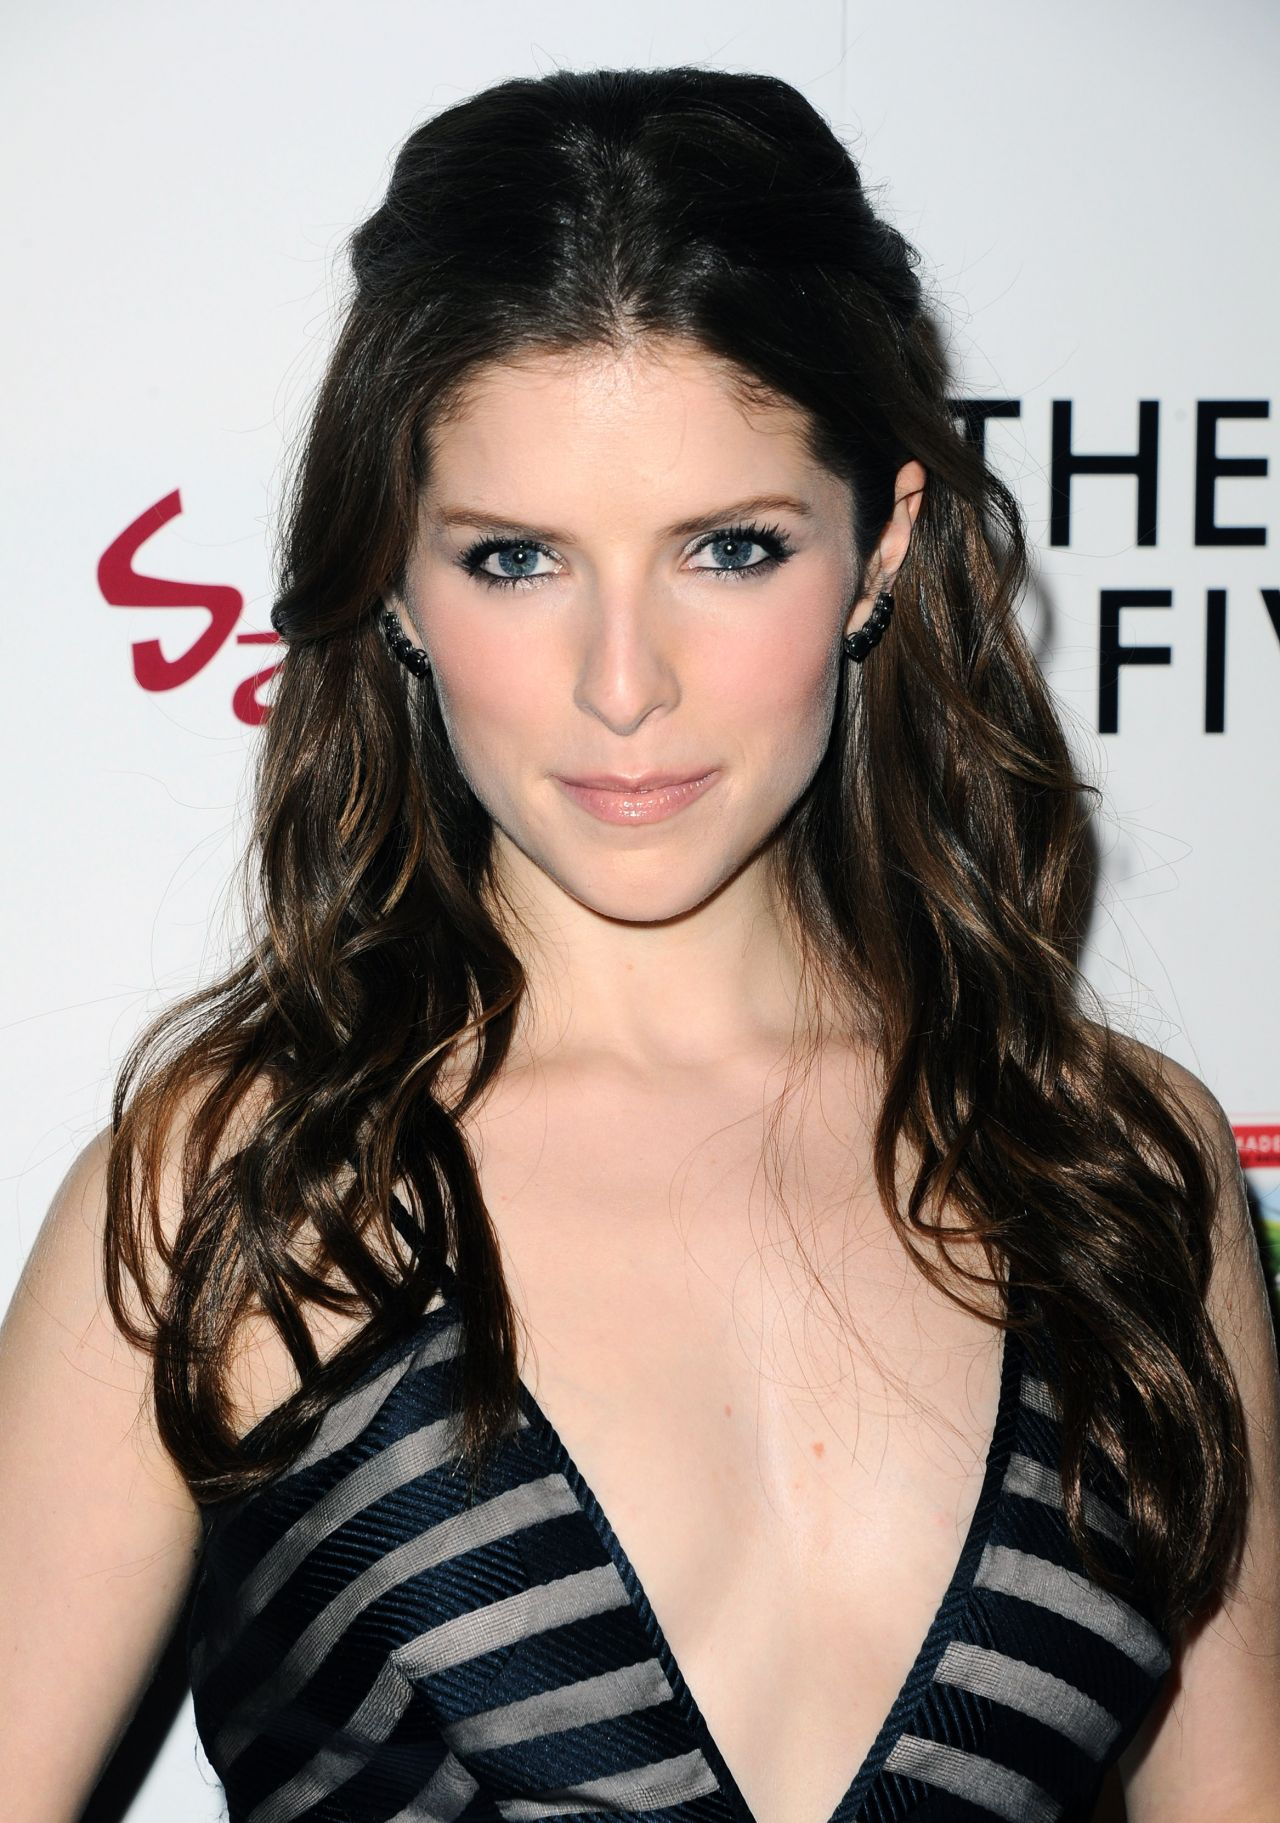 Anna Kendrick – 'The Last Five Years' Premiere in Hollywood Anna Kendrick